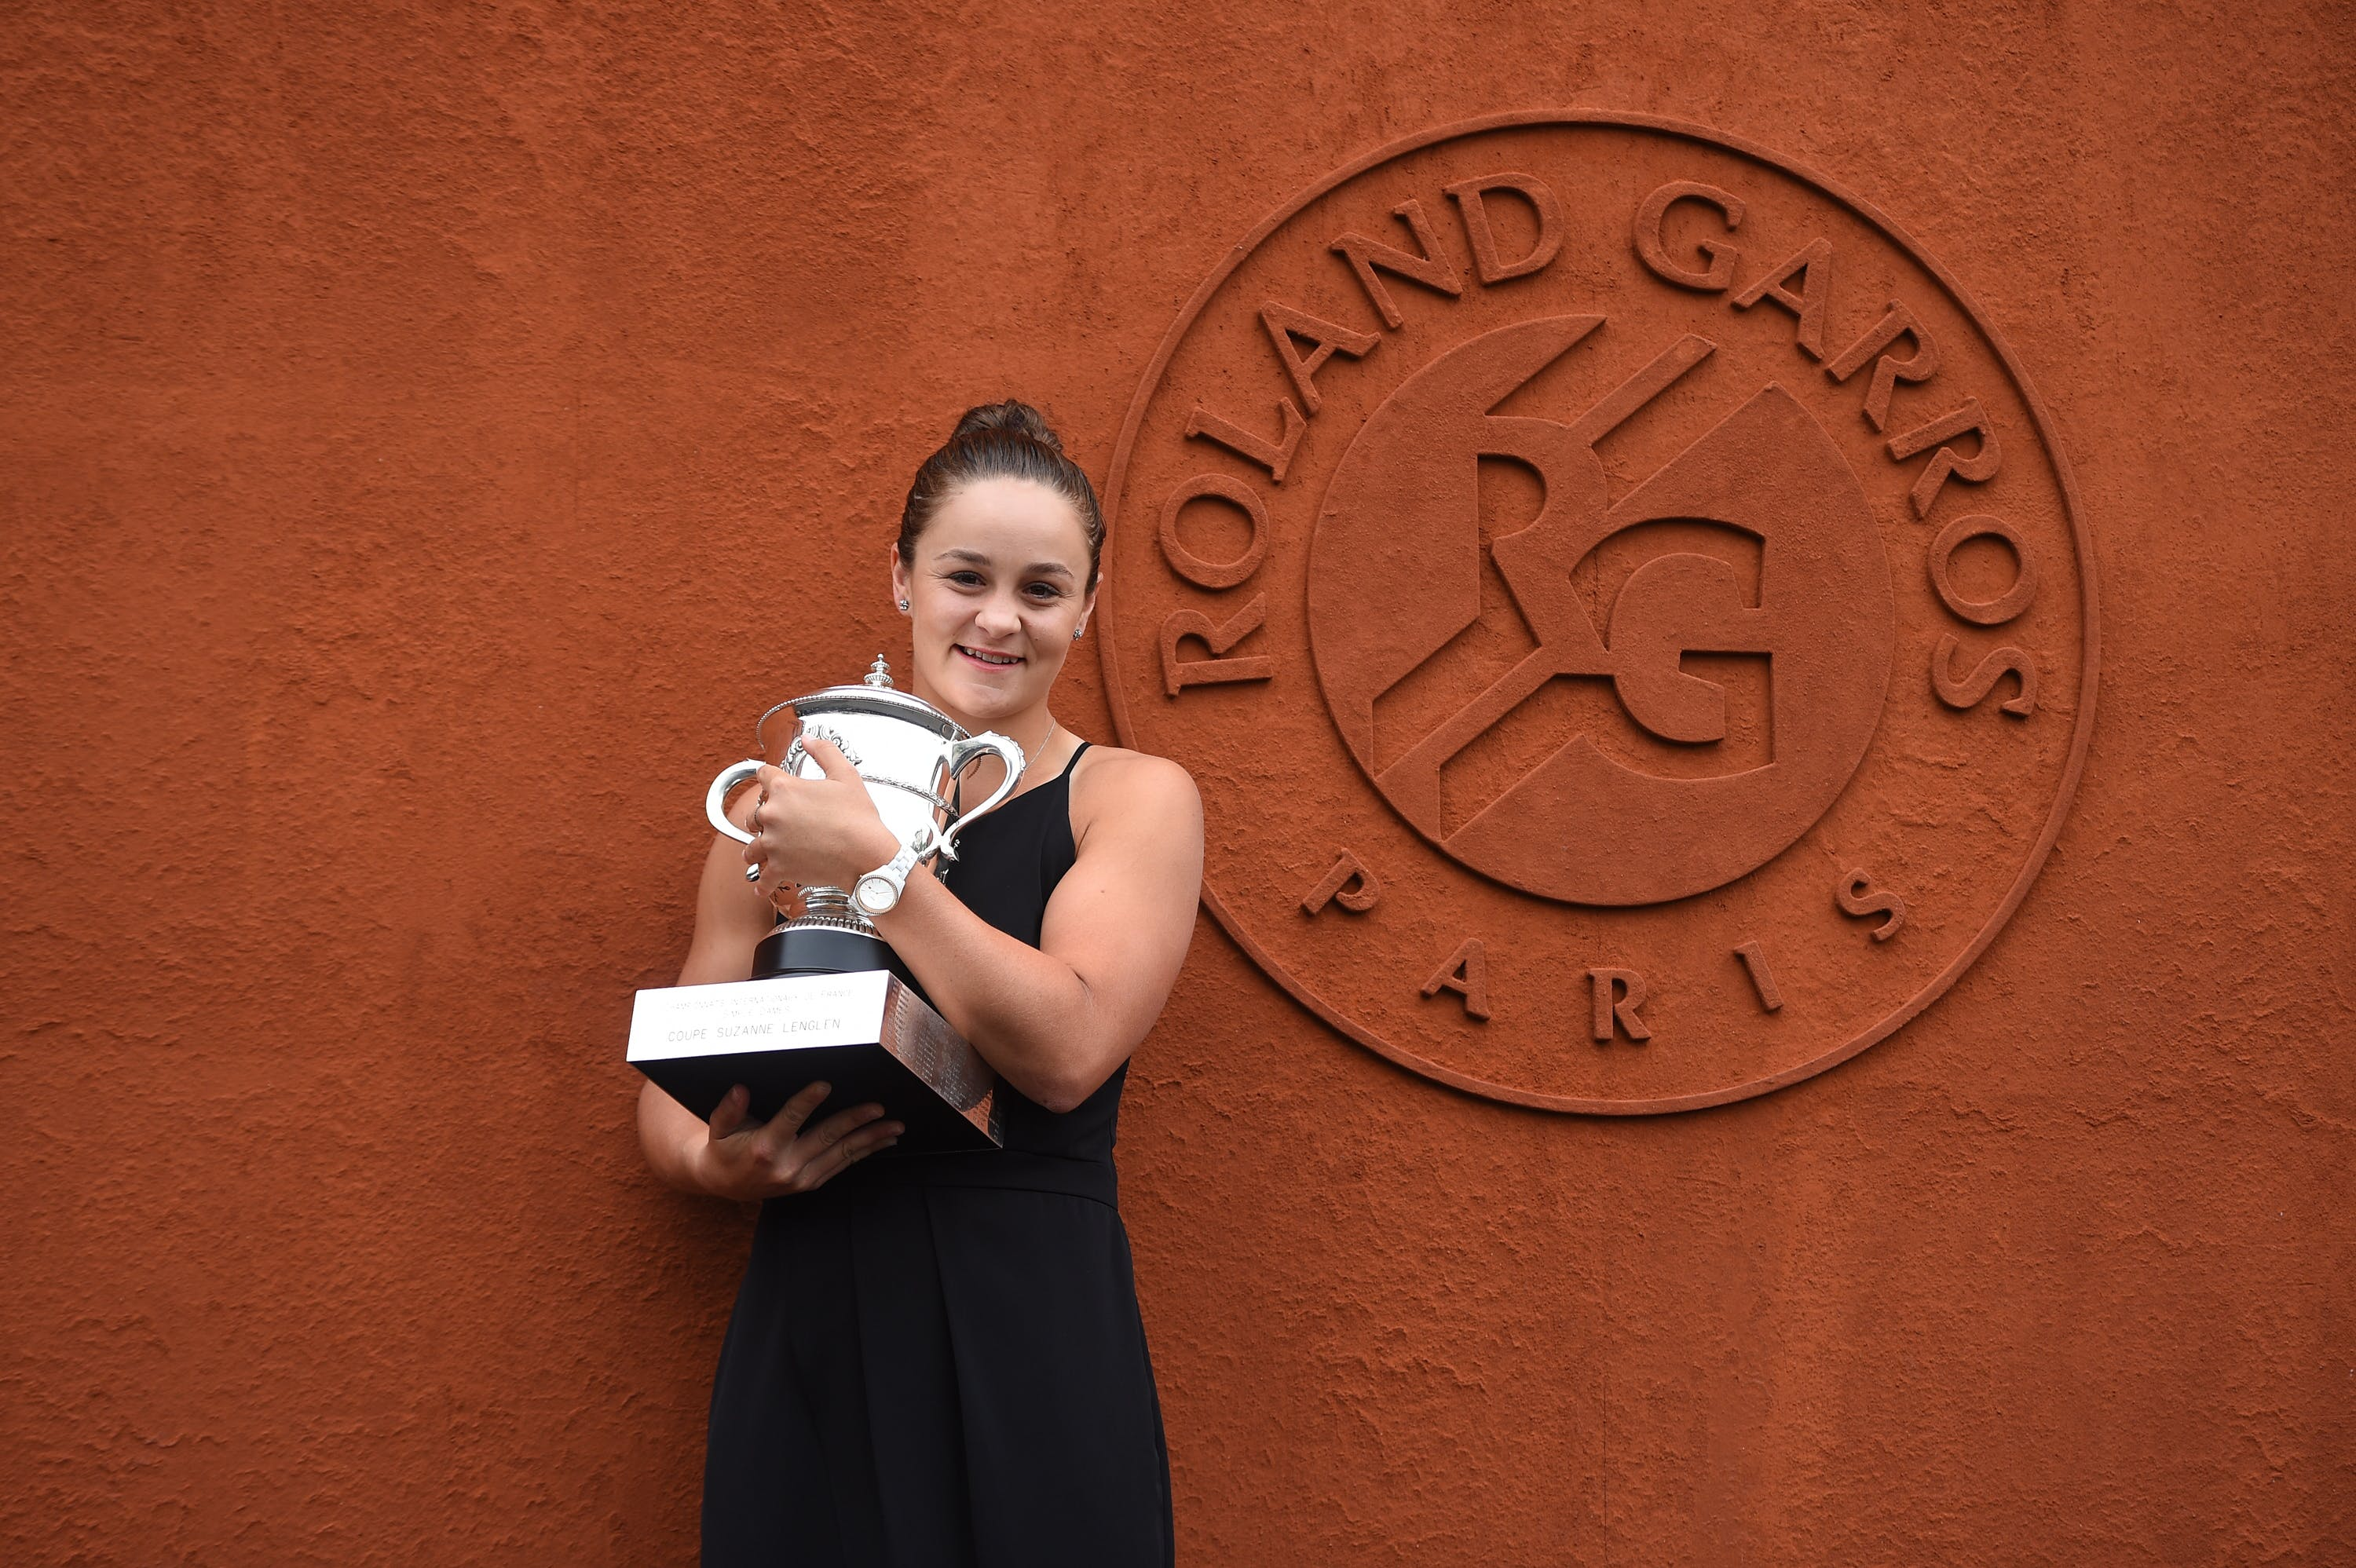 Ashleigh Barty smiling with her trophy at Roland-Garros 2019